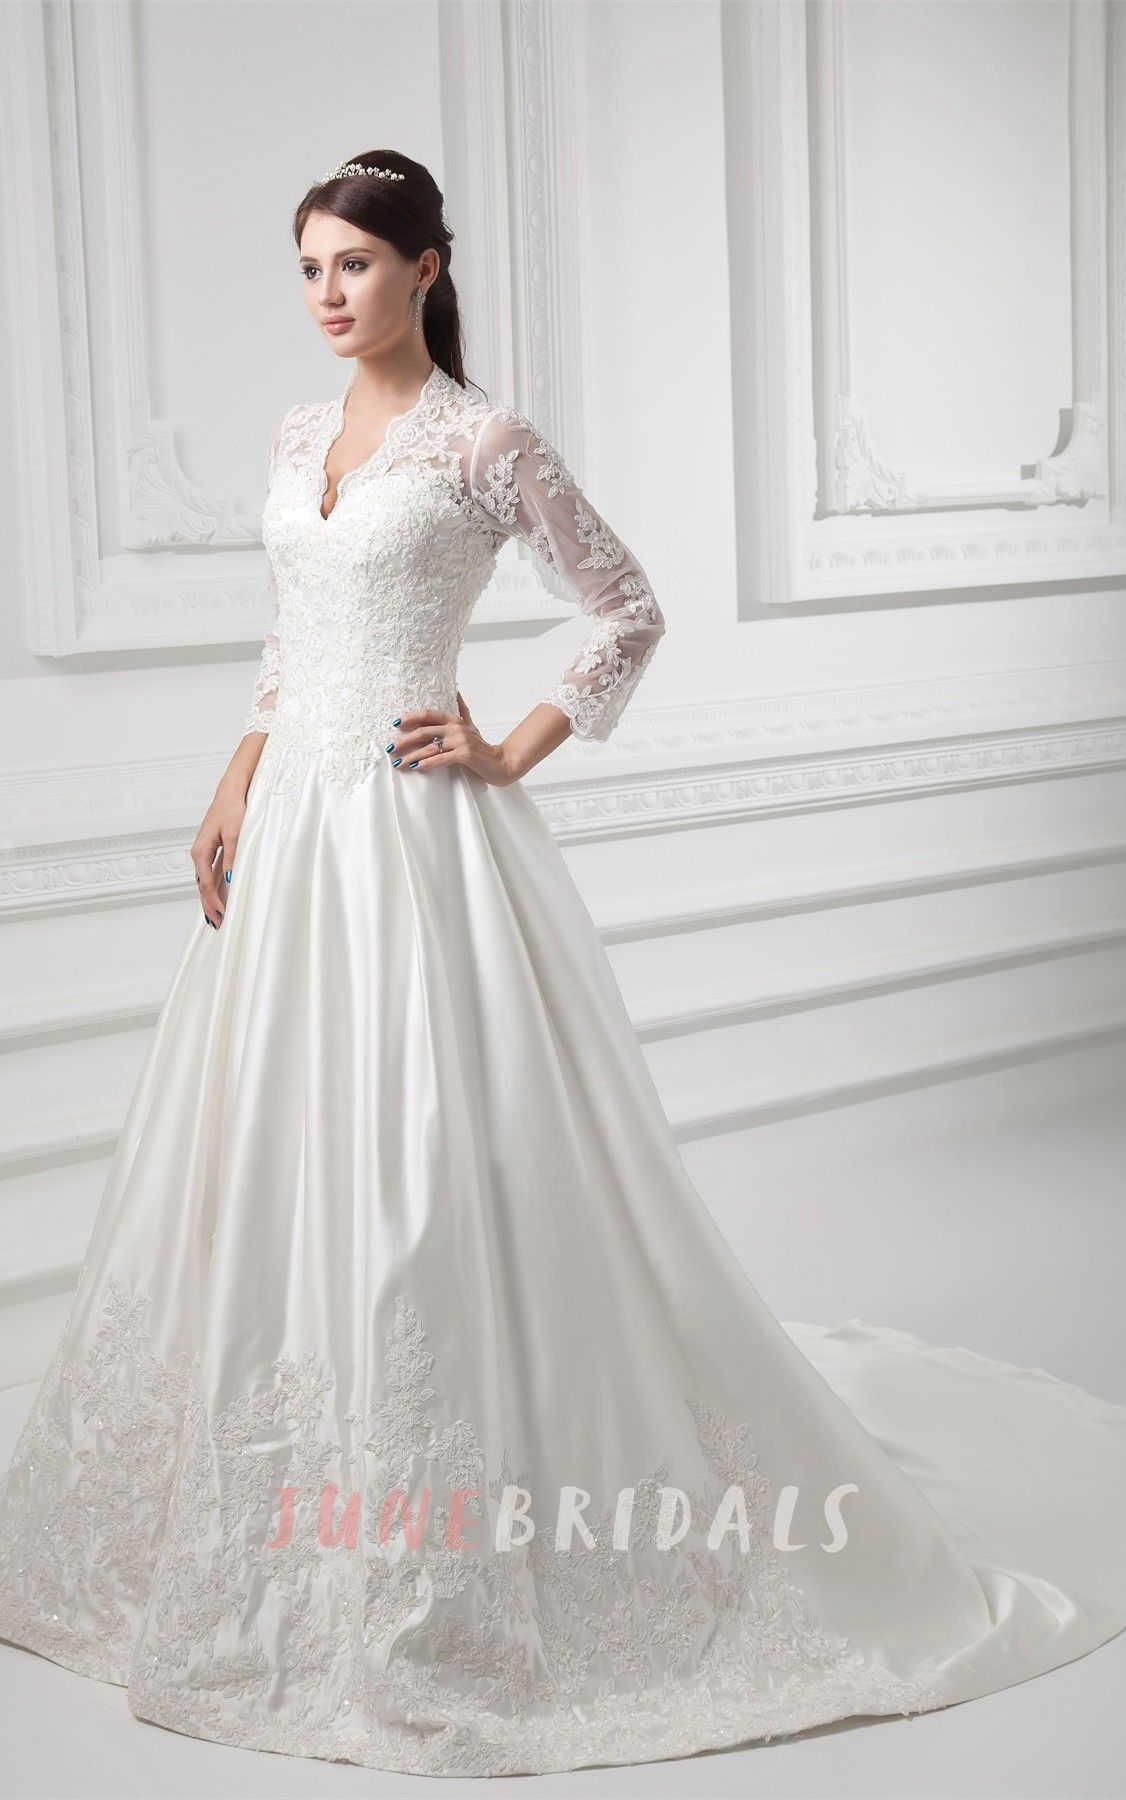 Long sleeve ball gown wedding dresses  Scallopedneck plunged ball lace gown with illusion long sleeves